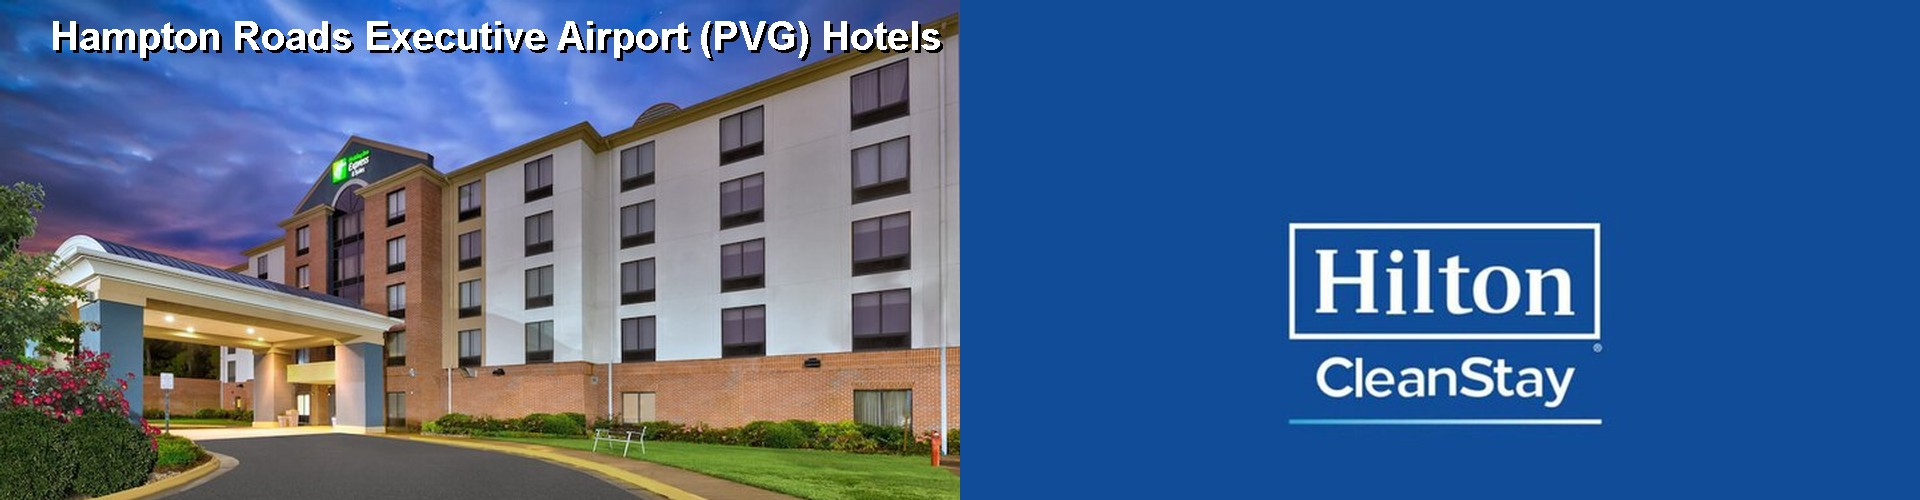 5 Best Hotels near Hampton Roads Executive Airport (PVG)